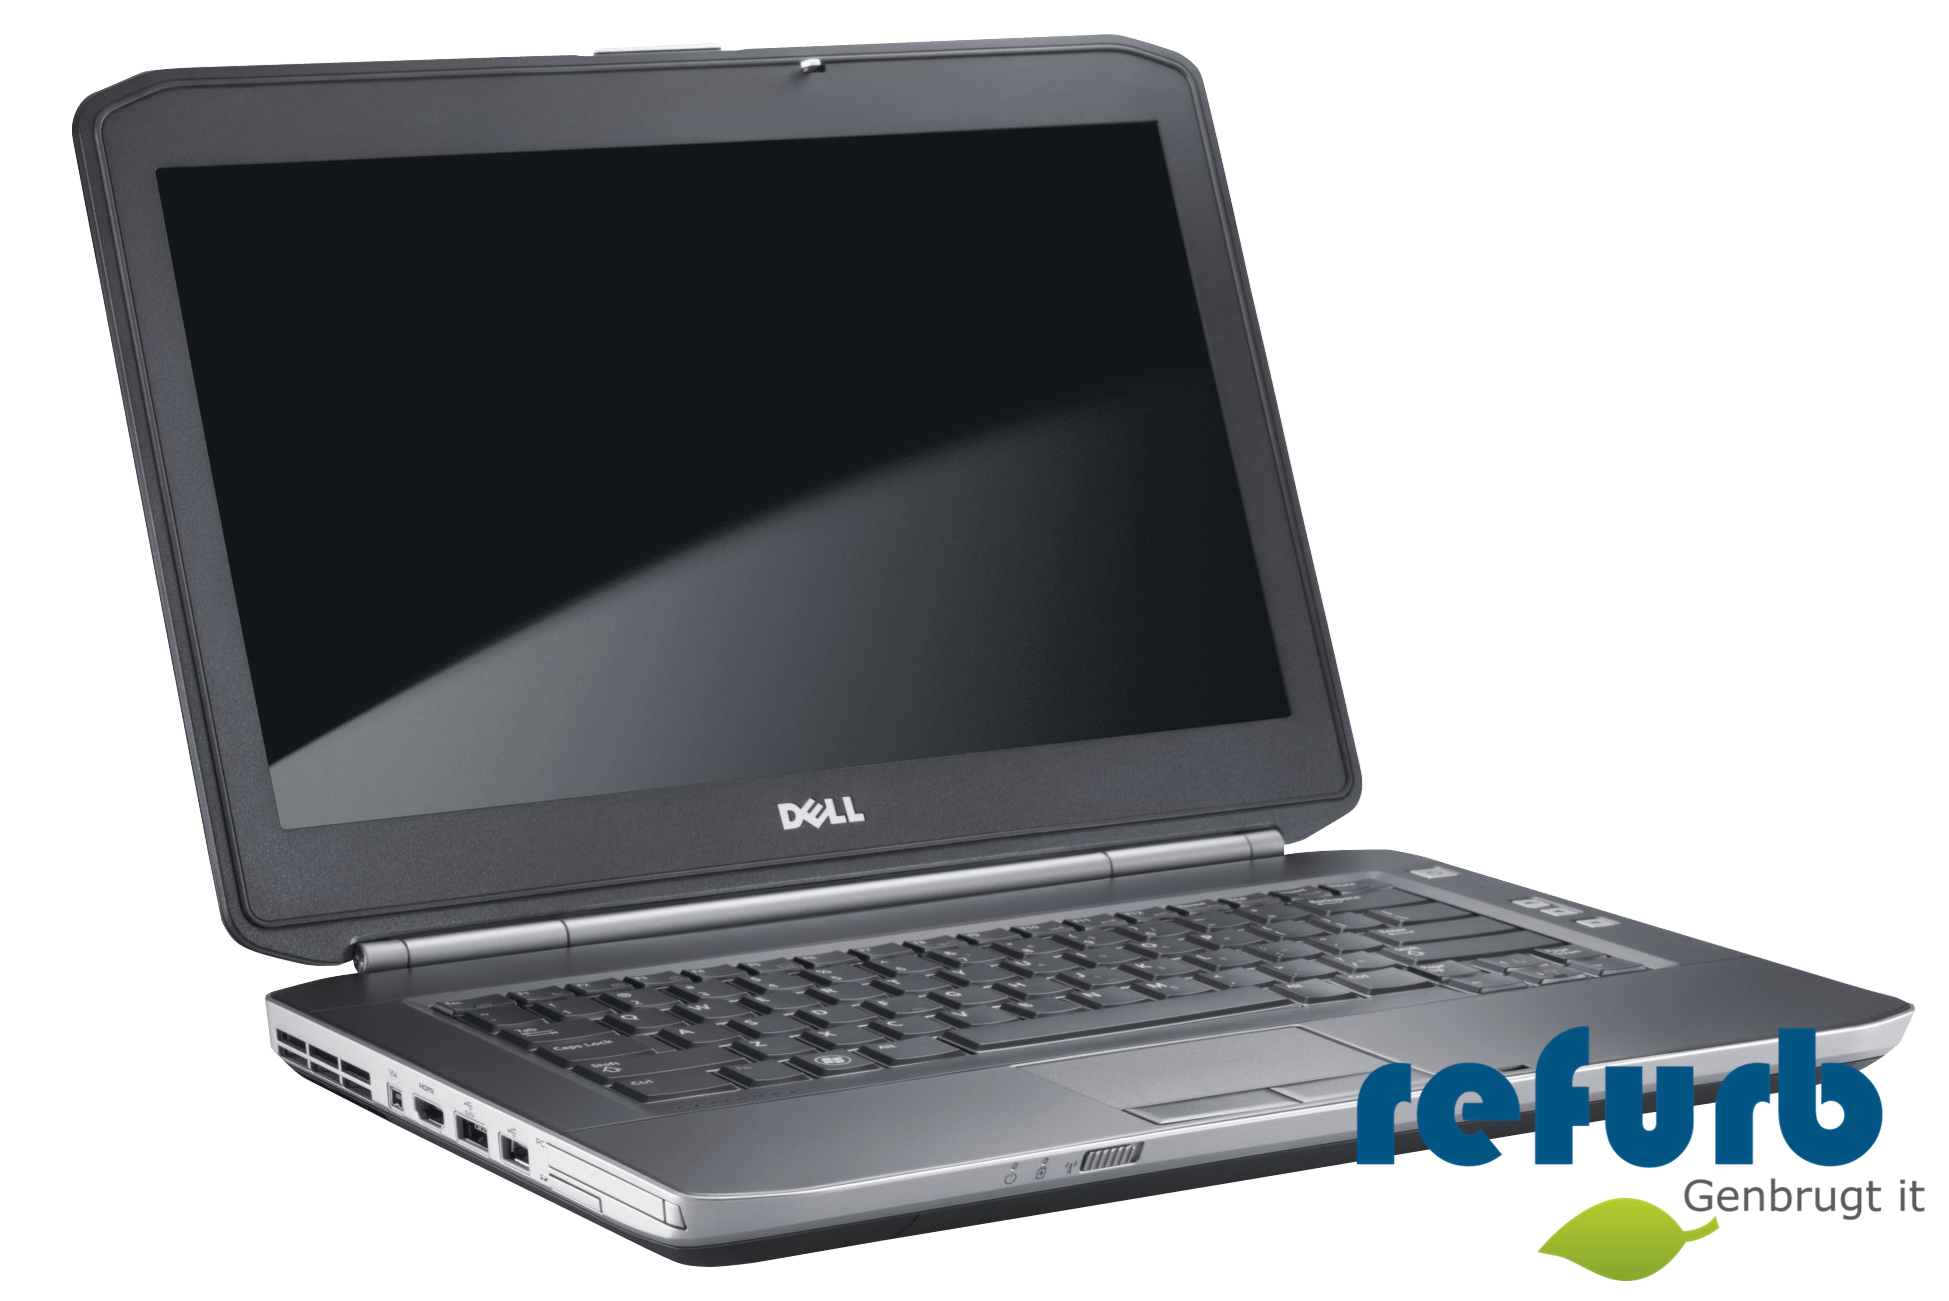 Dell – Dell latitude e6420 fra refurb